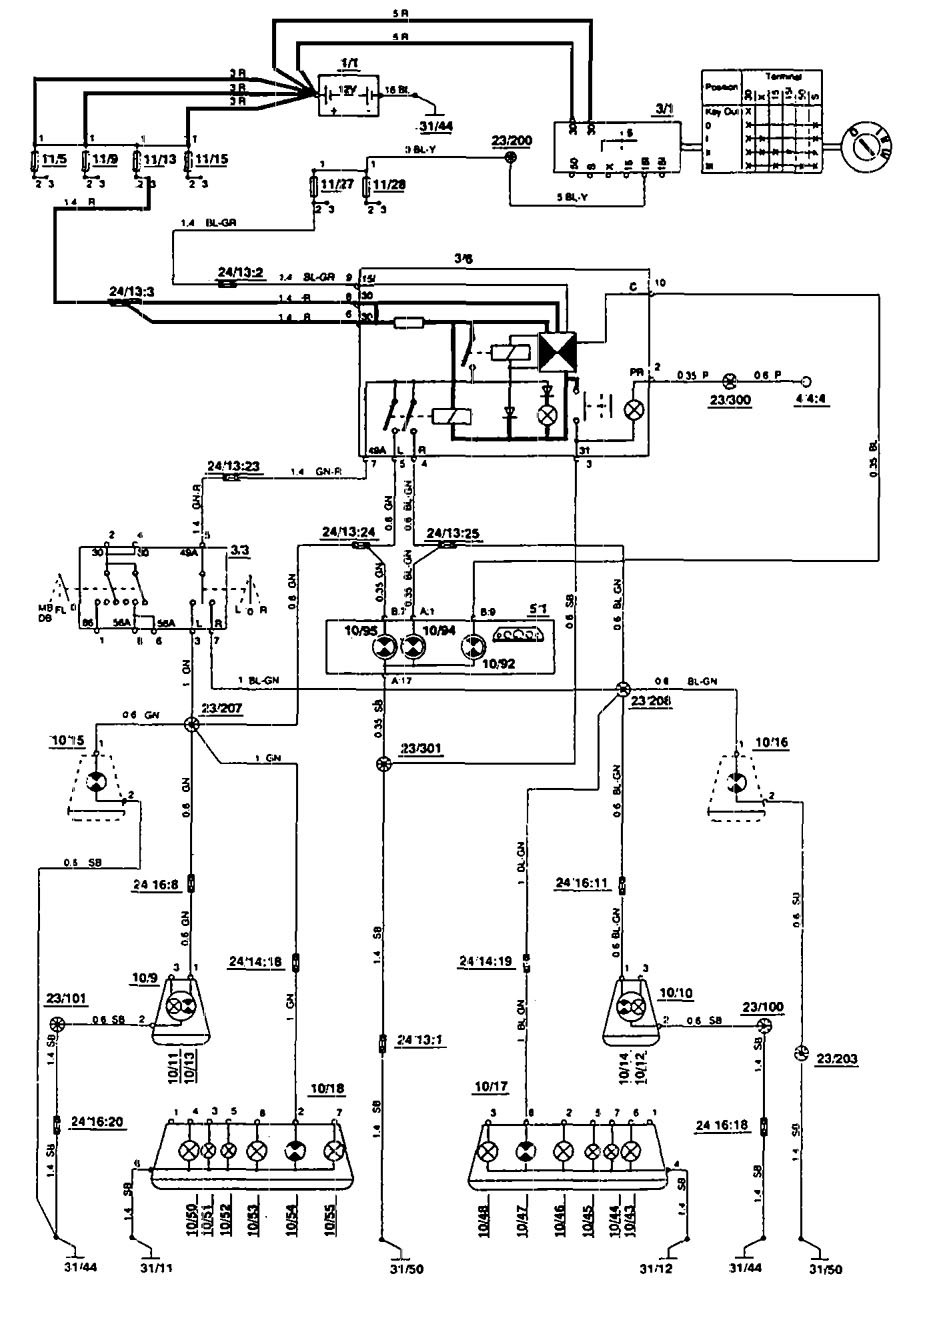 hight resolution of volvo 850 1993 wiring diagrams hazard lamp bagram airfield diagram hazard diagram falling risk